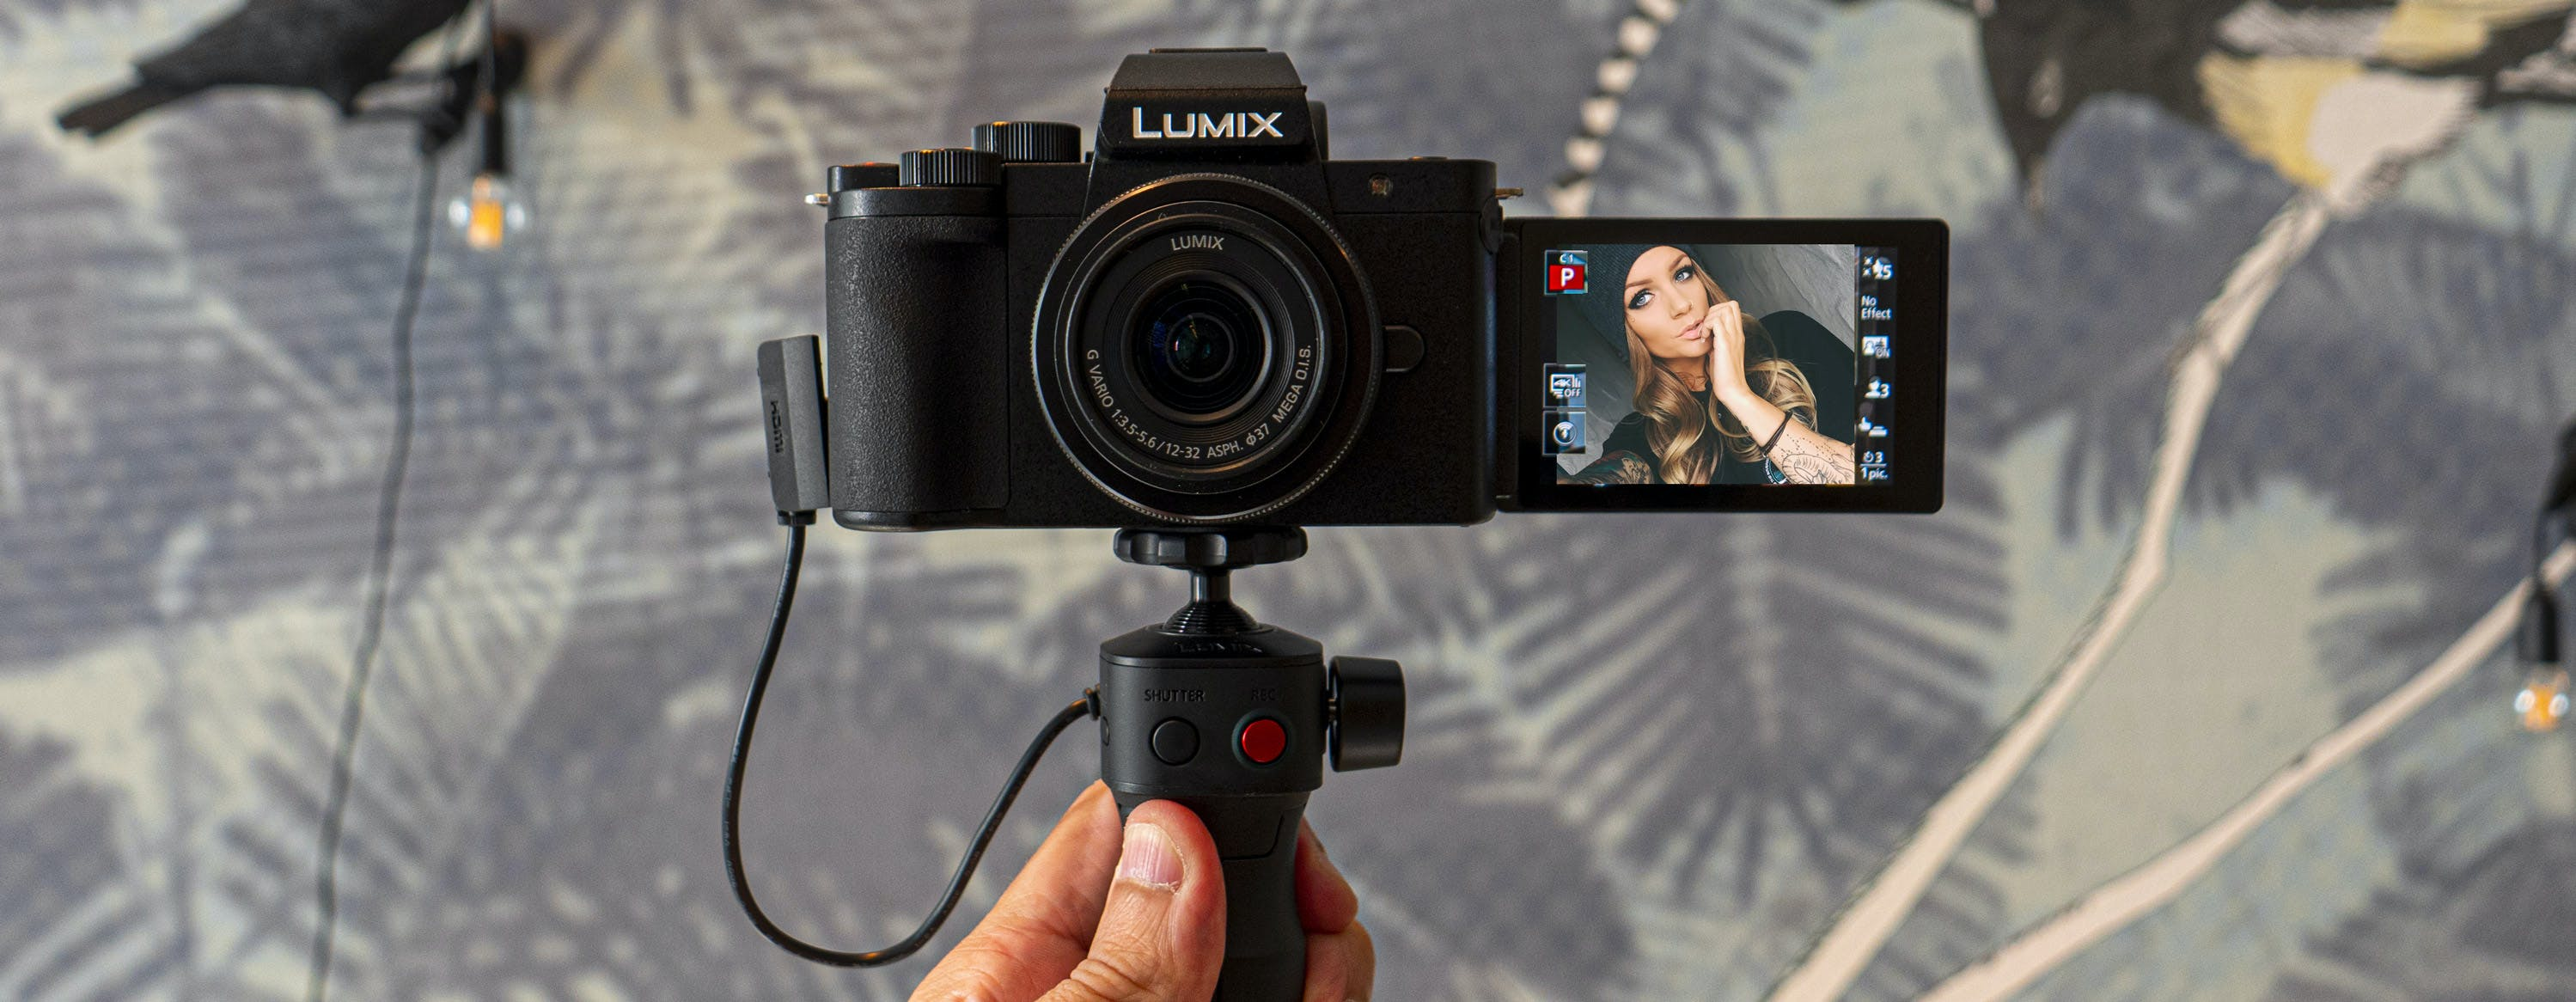 Lumix G100, anteprima. La mirrorless in miniatura nata per Instagram e Youtube